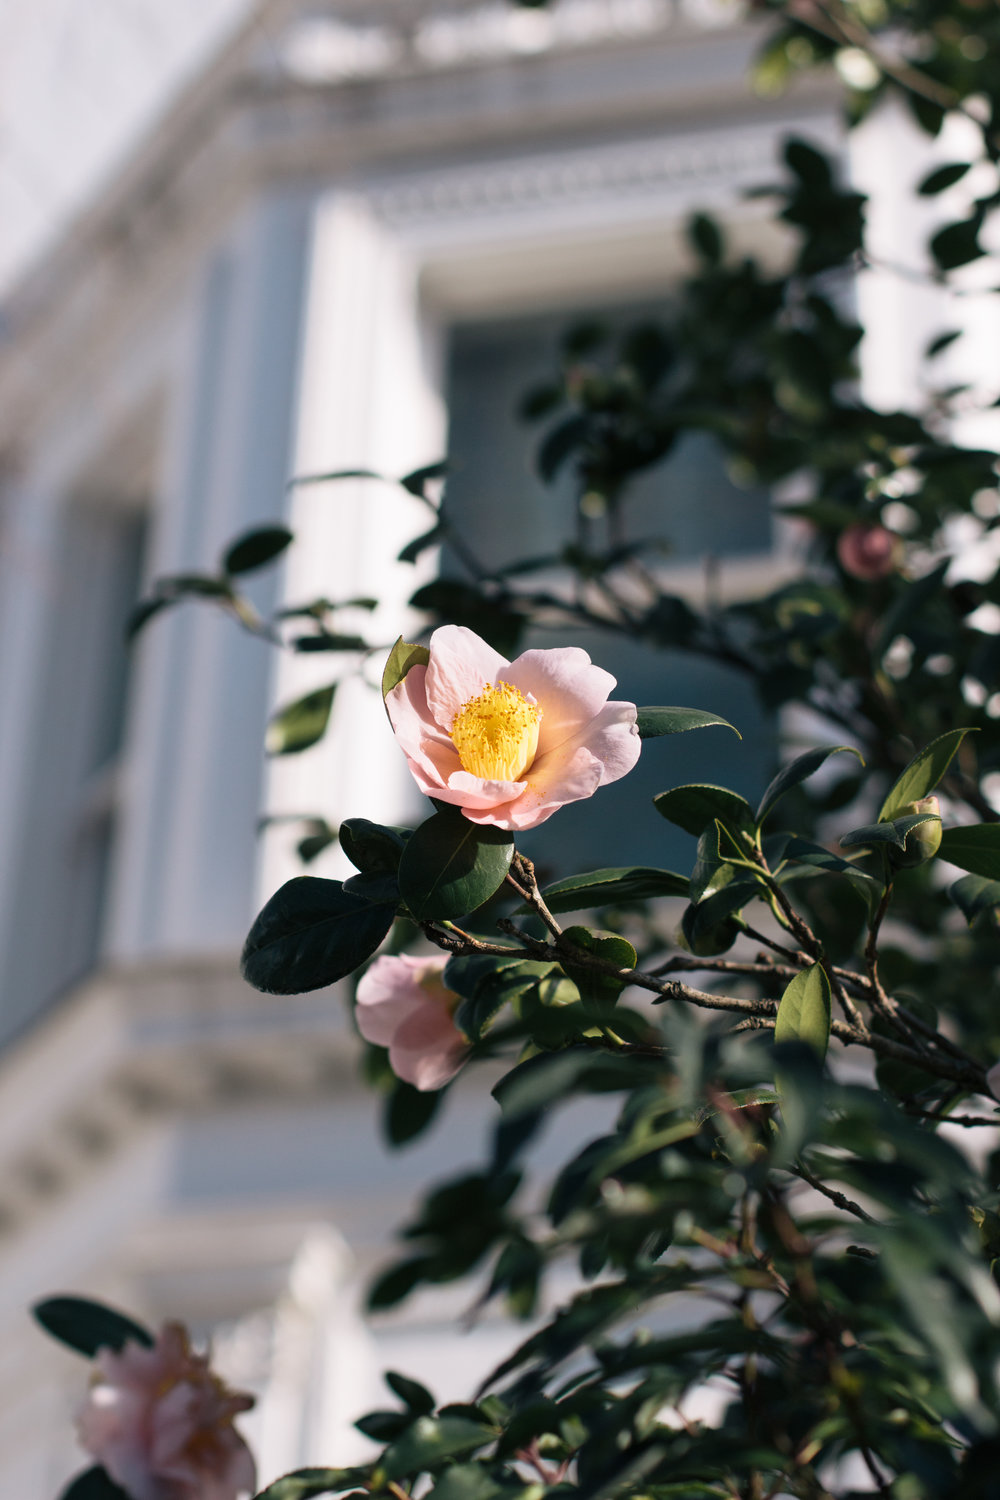 Is It Spring Yet? | A camellia flower blooms in Kensington,West London | Sundays and Somedays